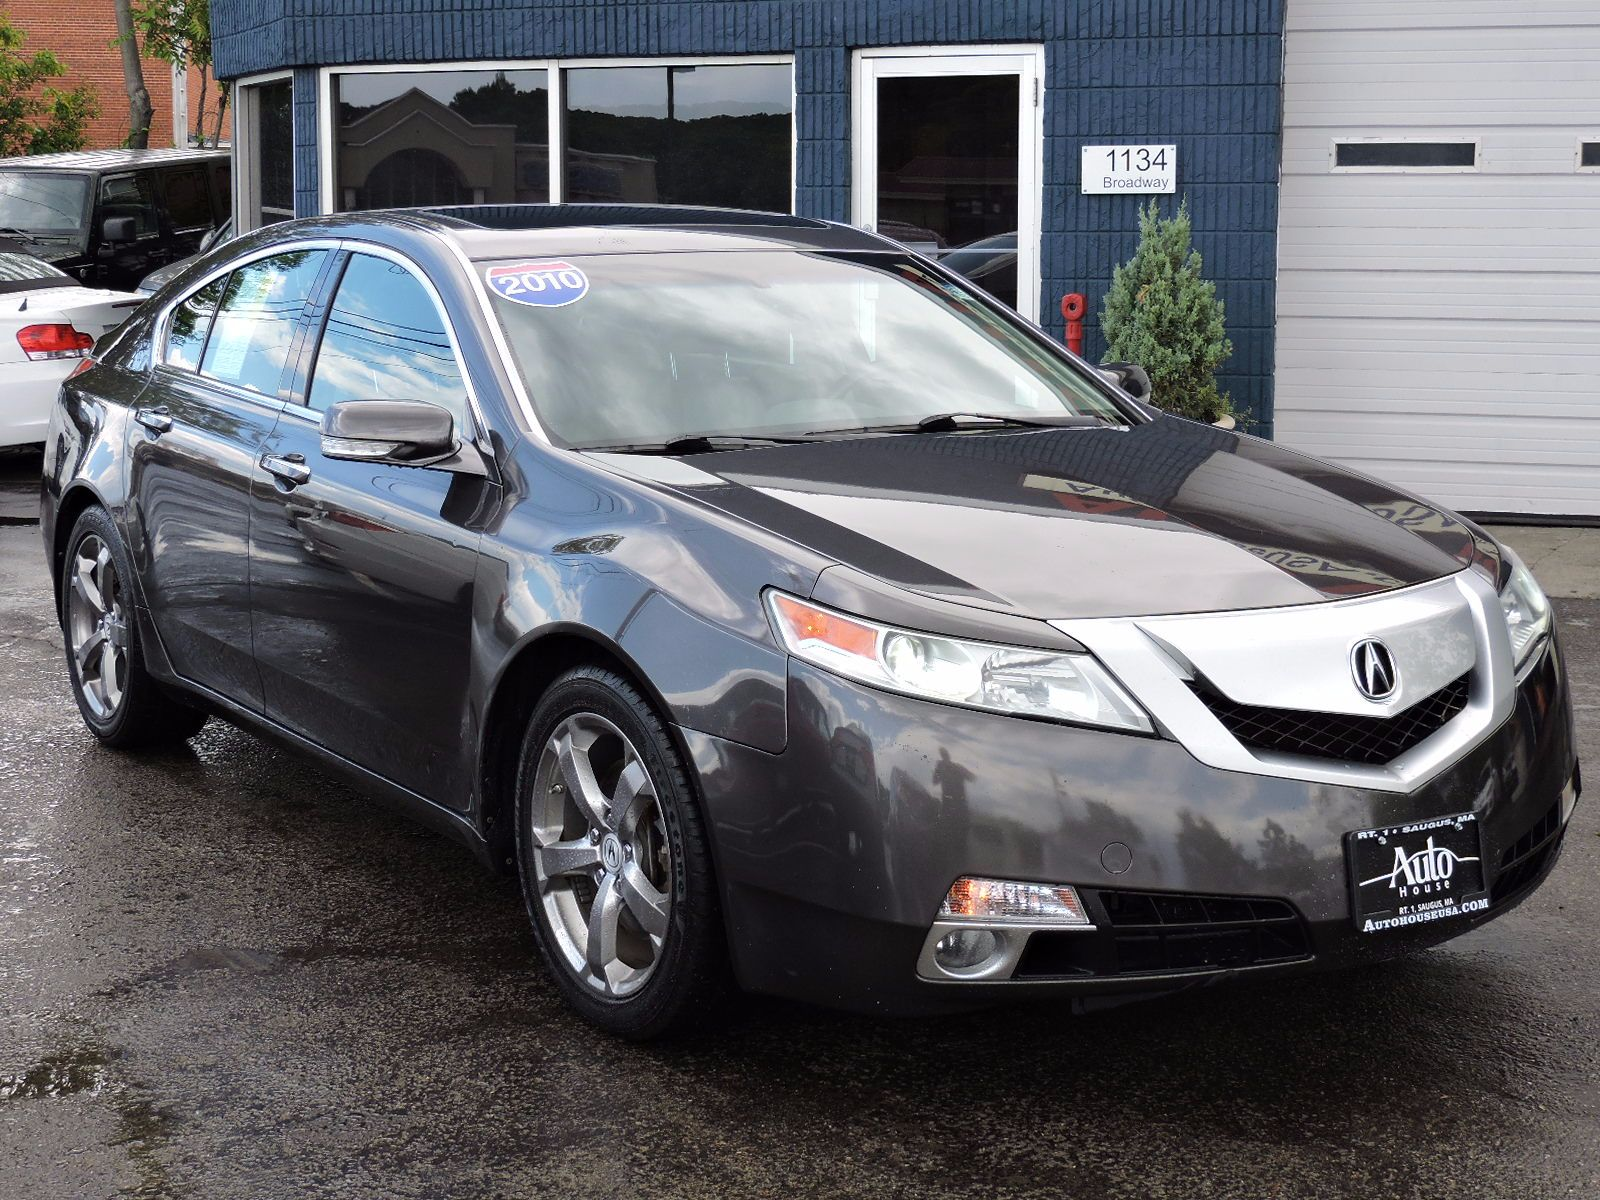 2010 Acura TL - SH AWD - All Wheel Drive - Tech Package - Navigation